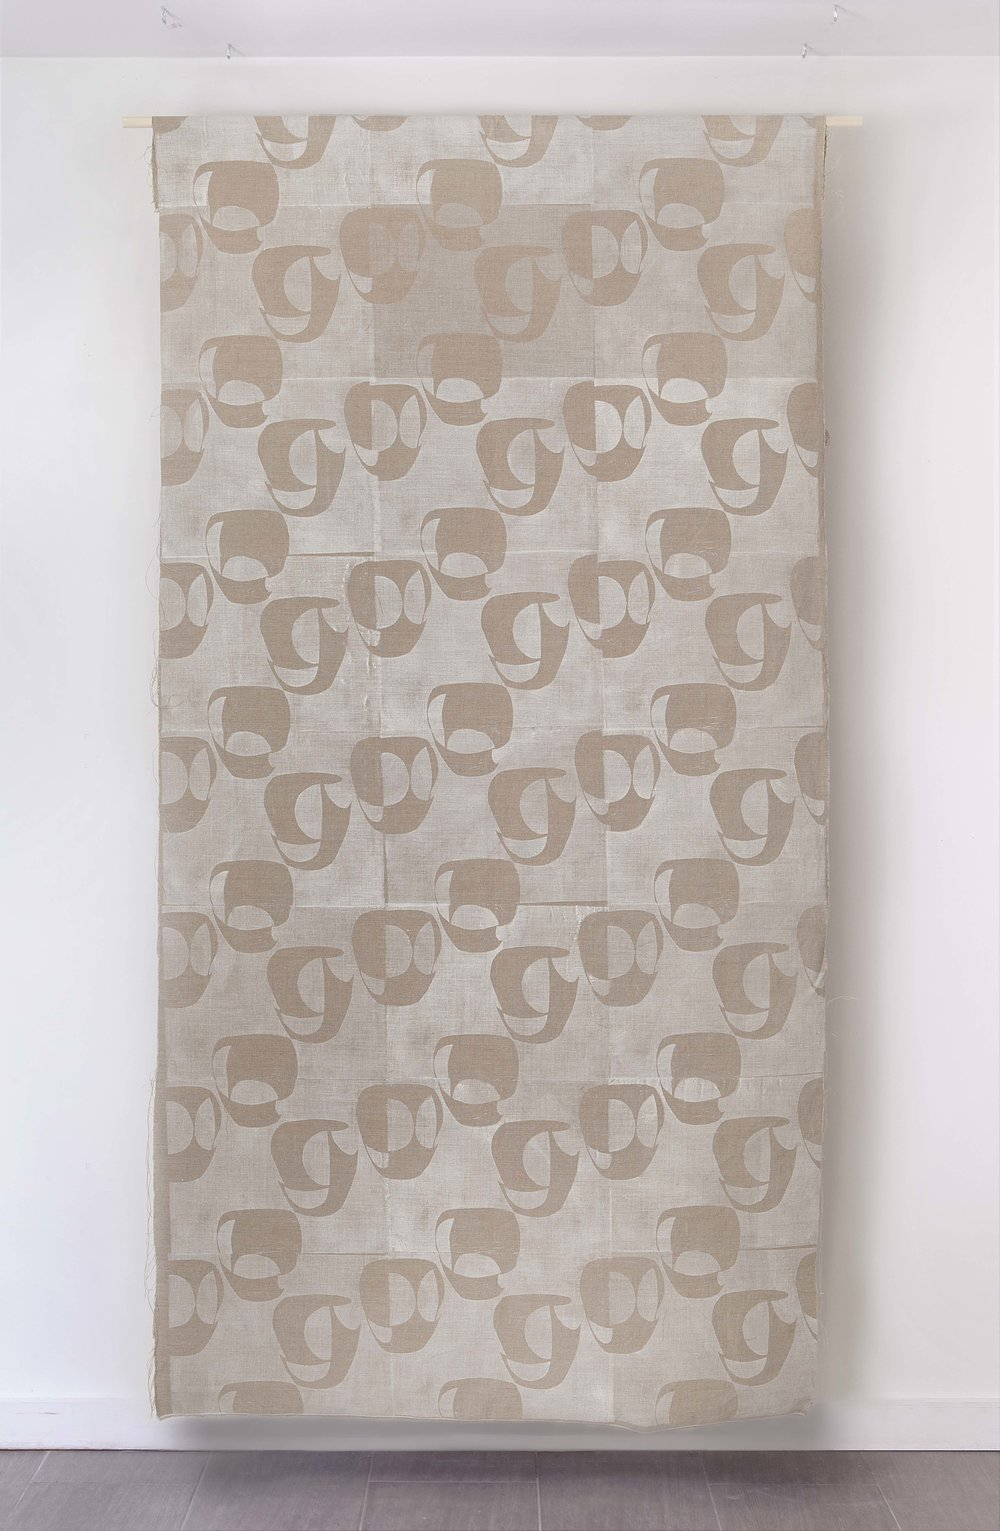 Janis Stemmermann printed linen panel